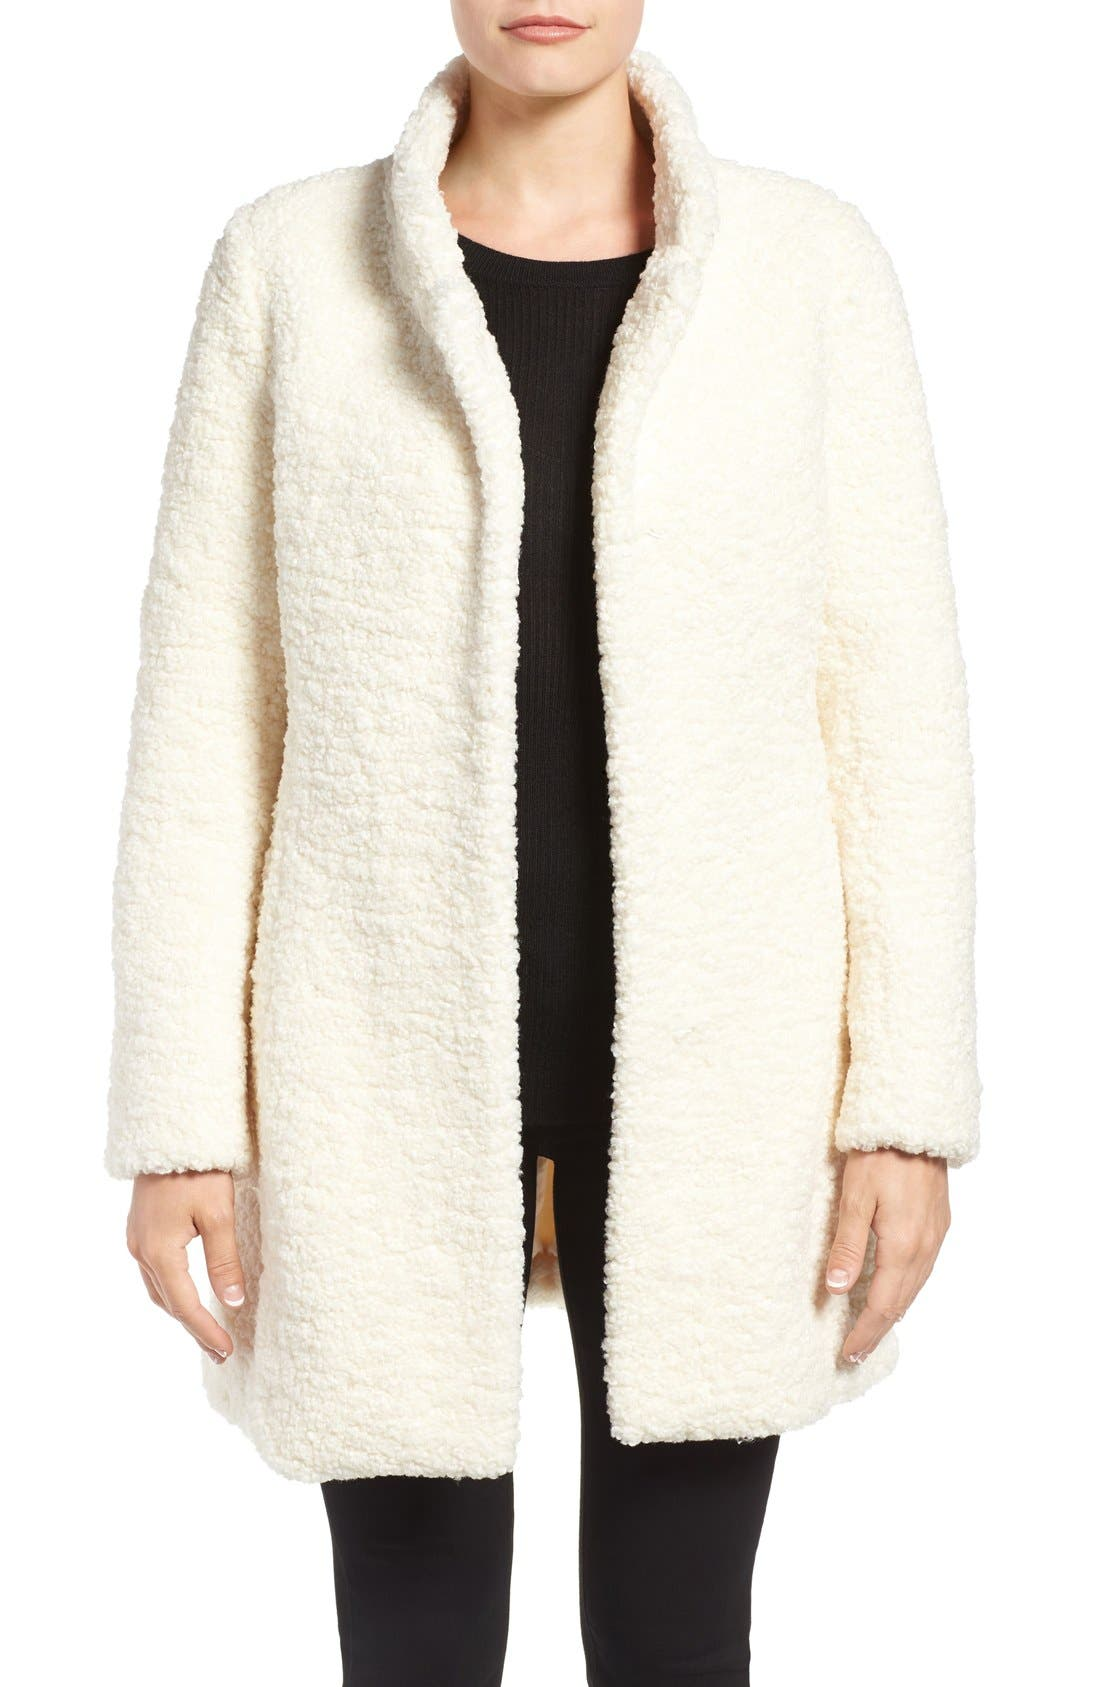 Alternate Image 1 Selected - Ivanka Trump Textured Faux Fur Coat